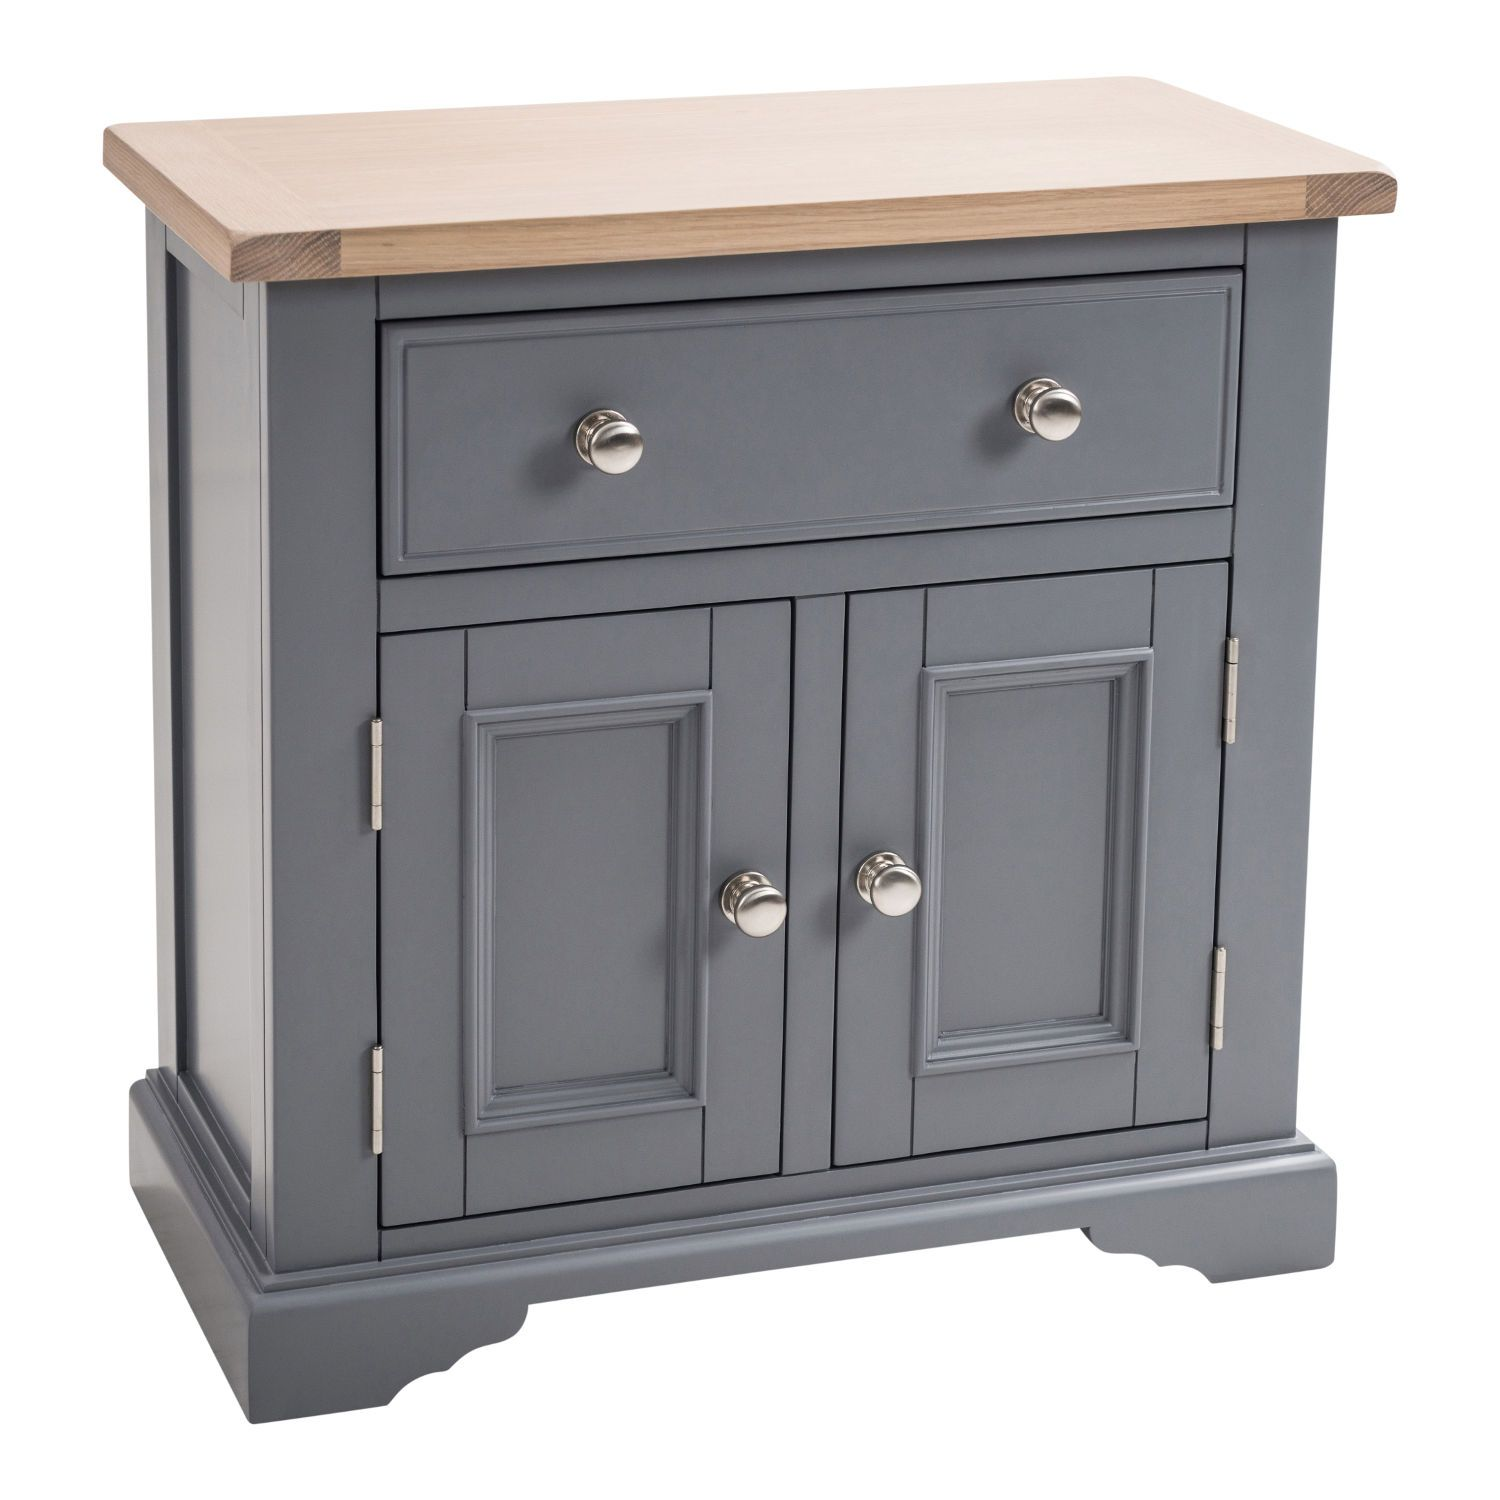 Best Dressers For Sale Dressers For Sale Okc Dressers For 640 x 480